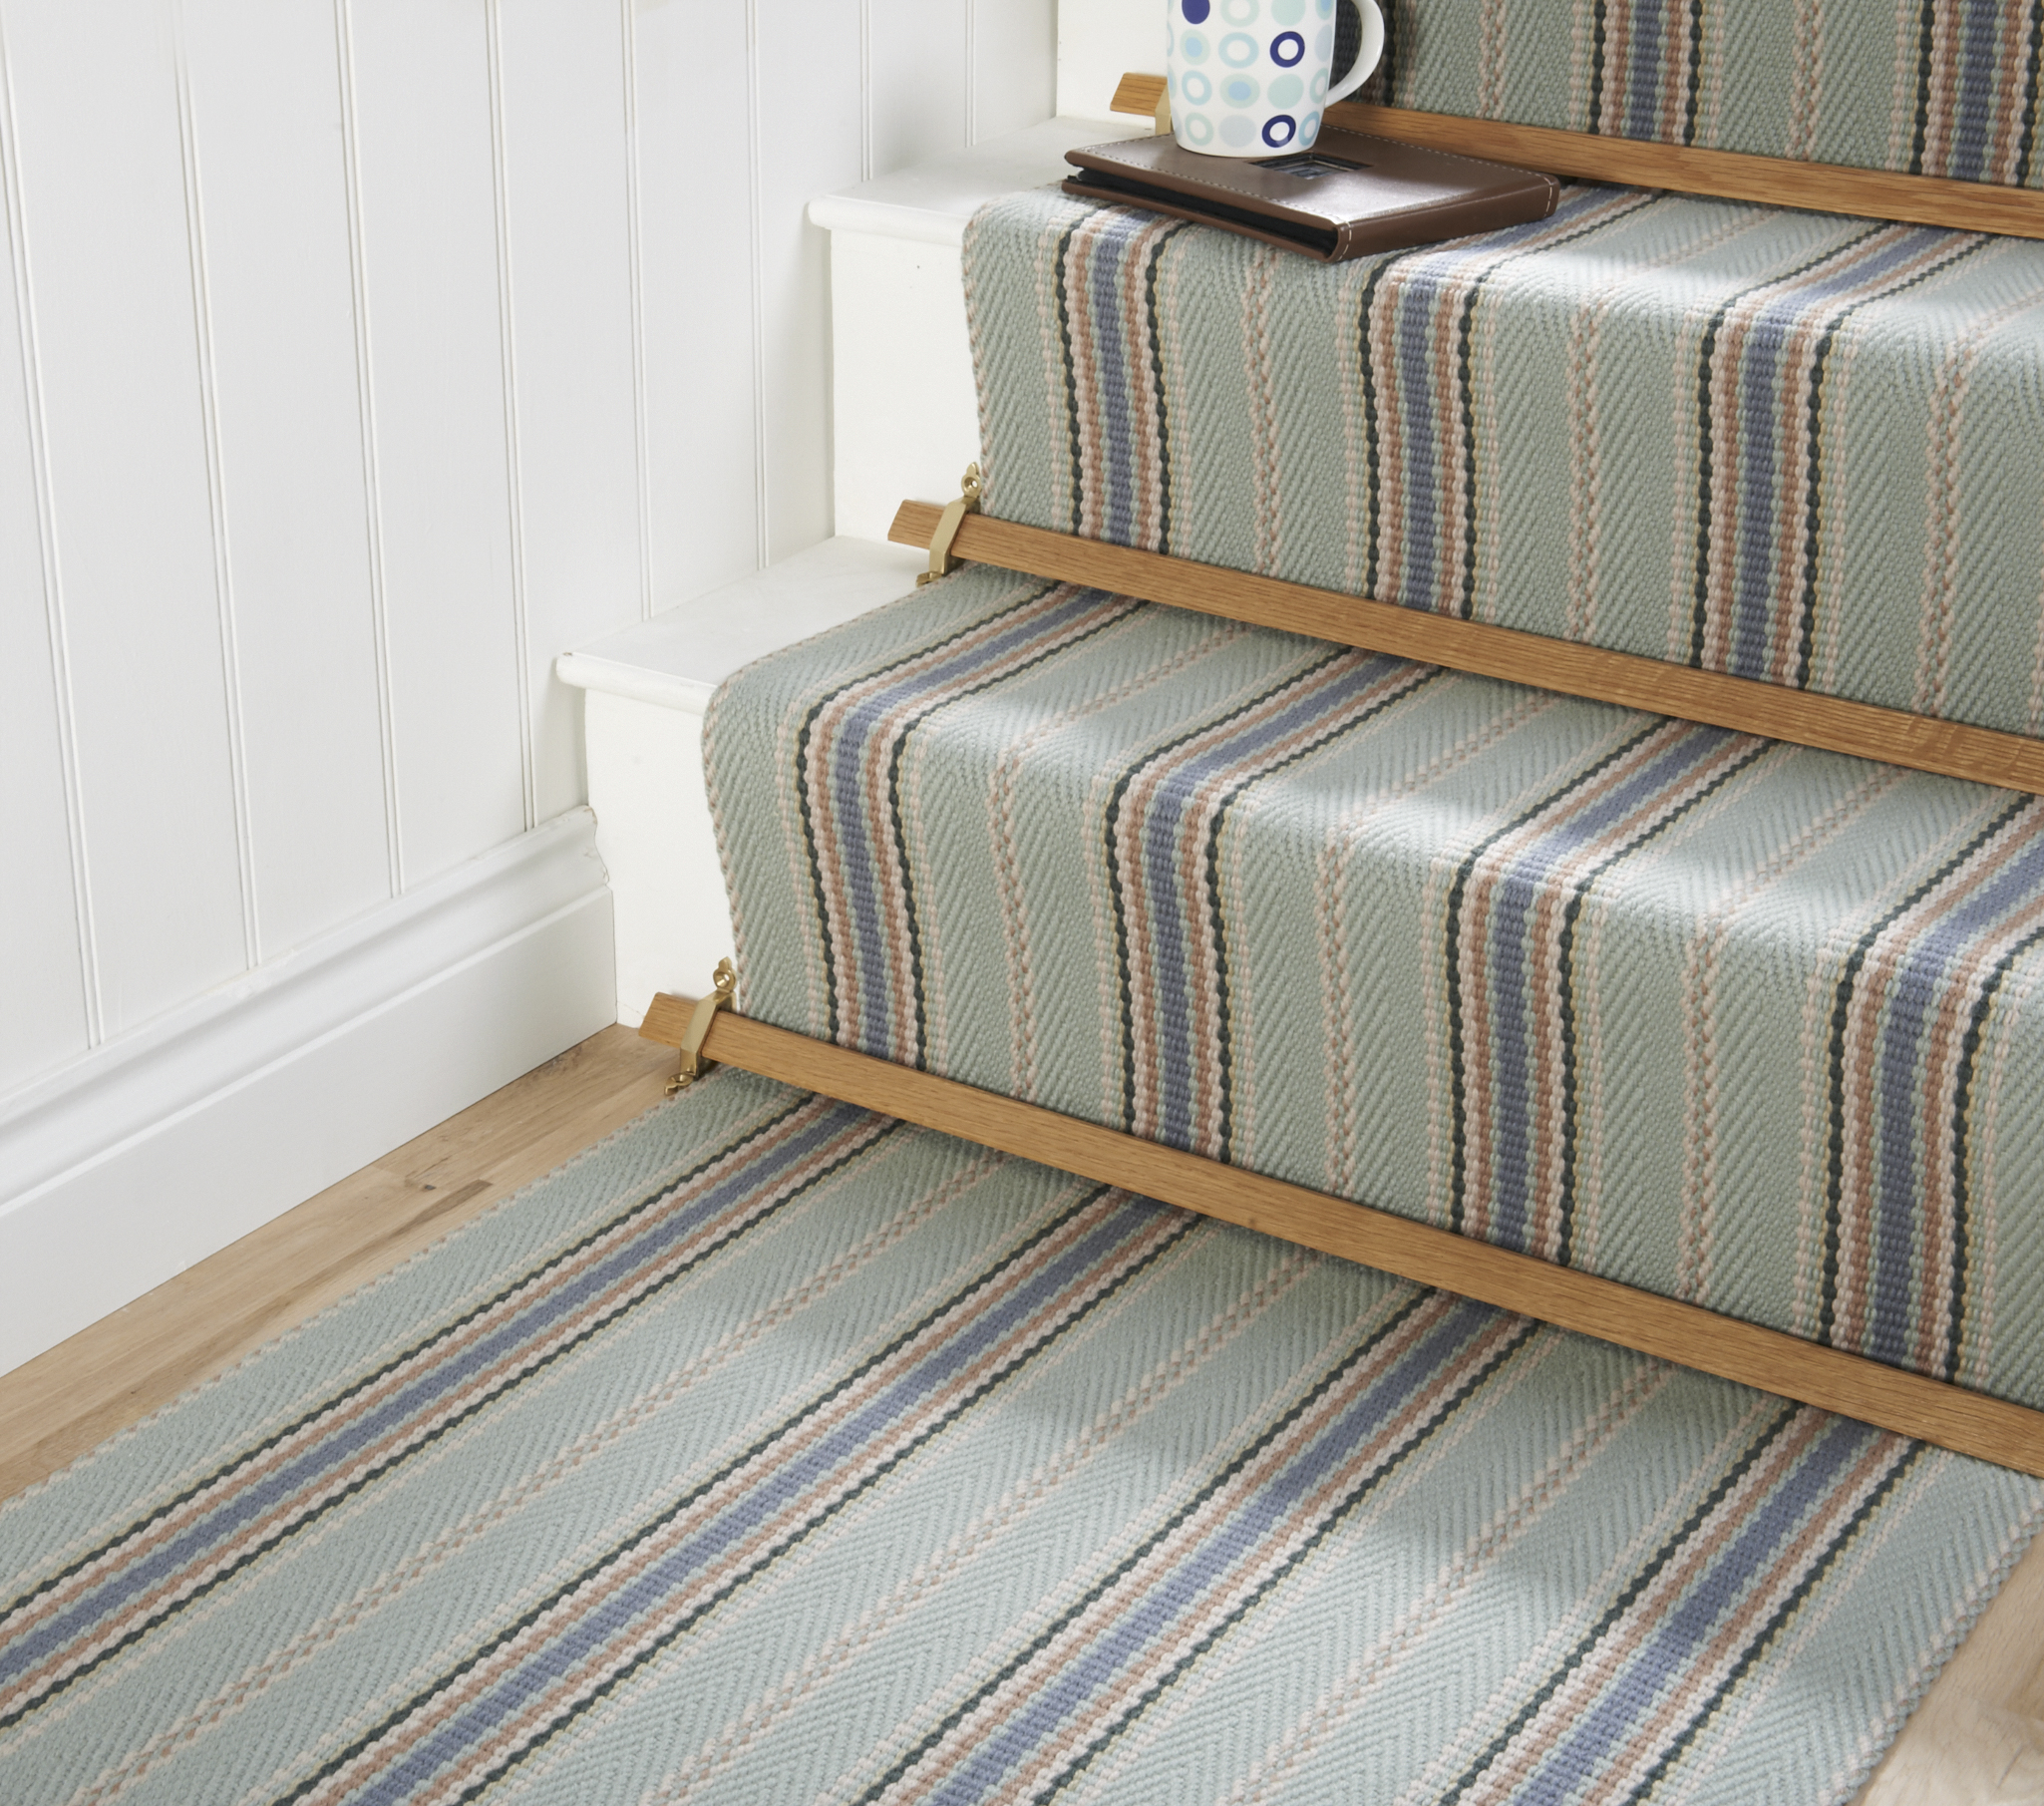 Newcastle Carpets Carpet Tiles Newcastle Adamms Carpets